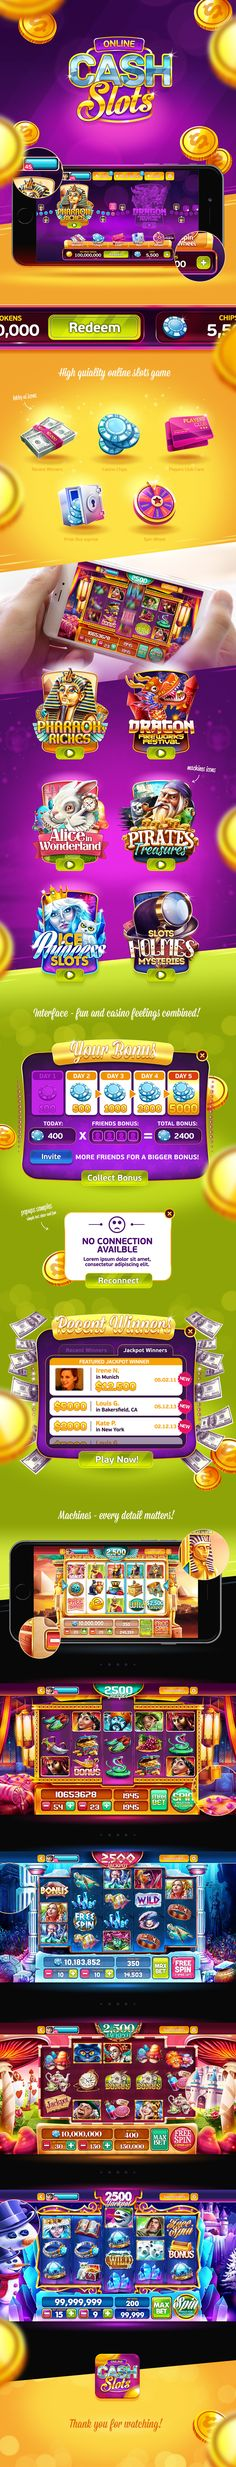 Cash Slots | game ui on Behance